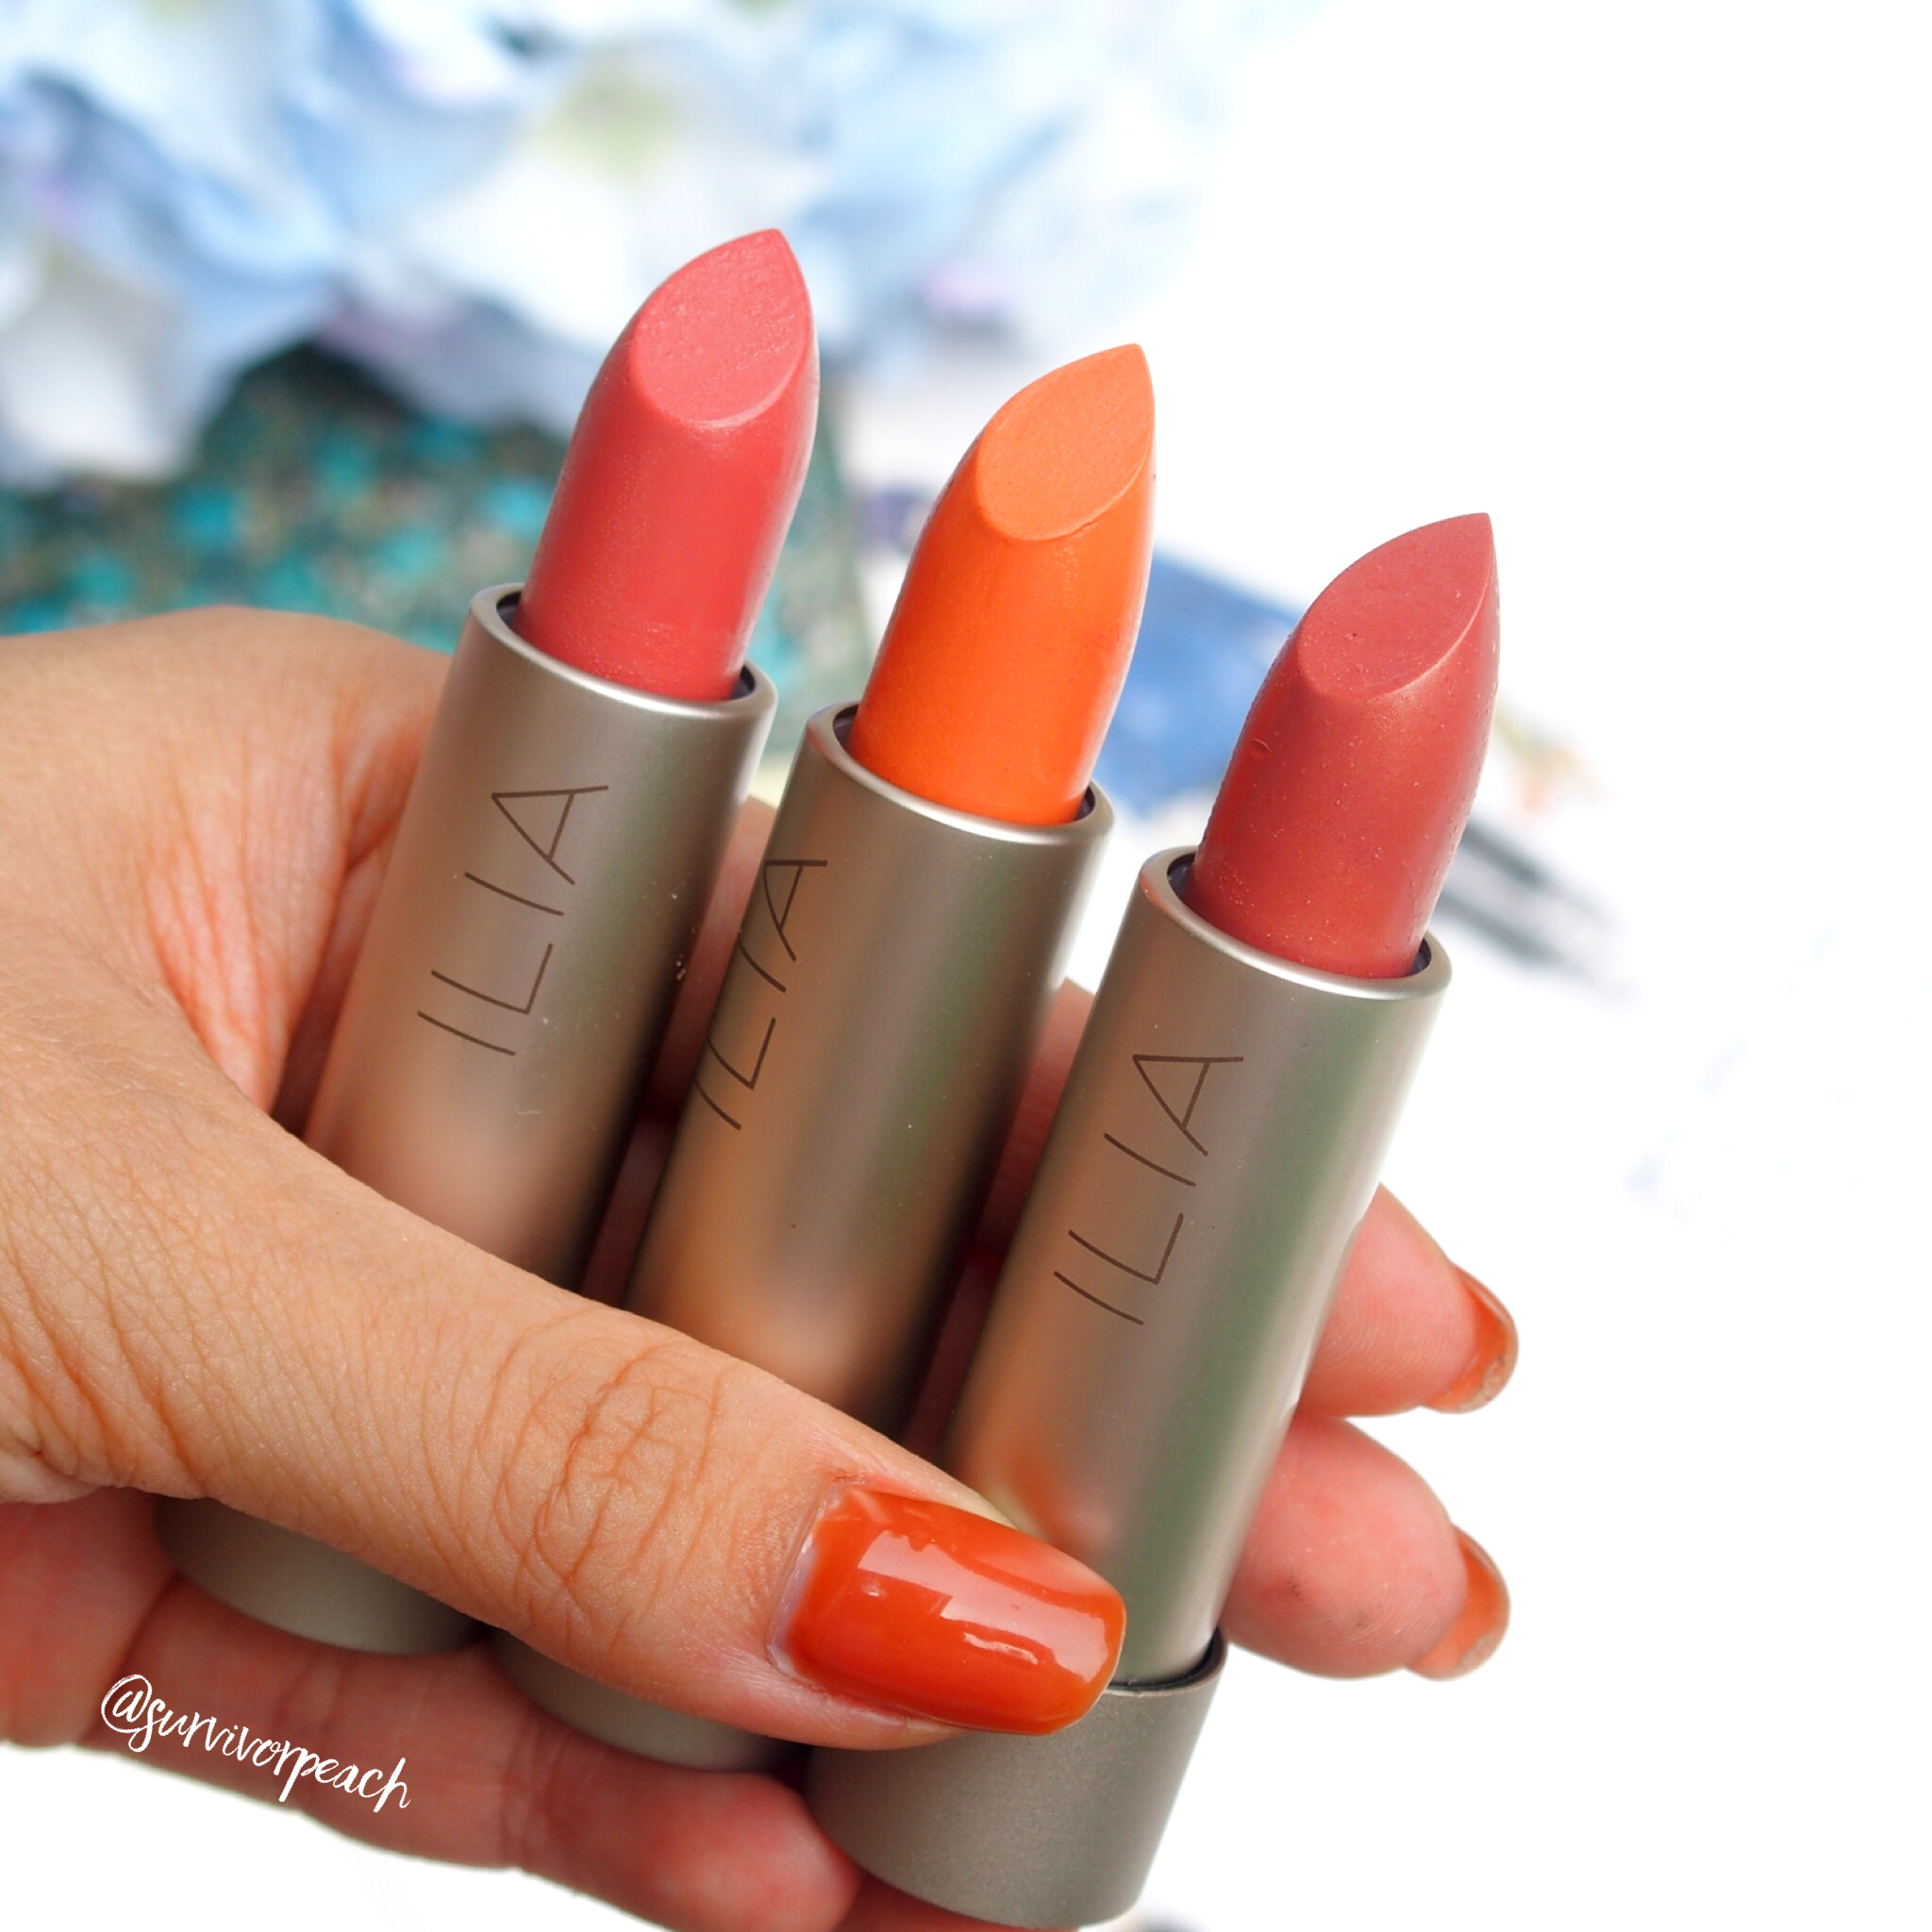 Ilia Tinted Lip conditioners in shades Nobody's Baby, Dizzy, and These Days